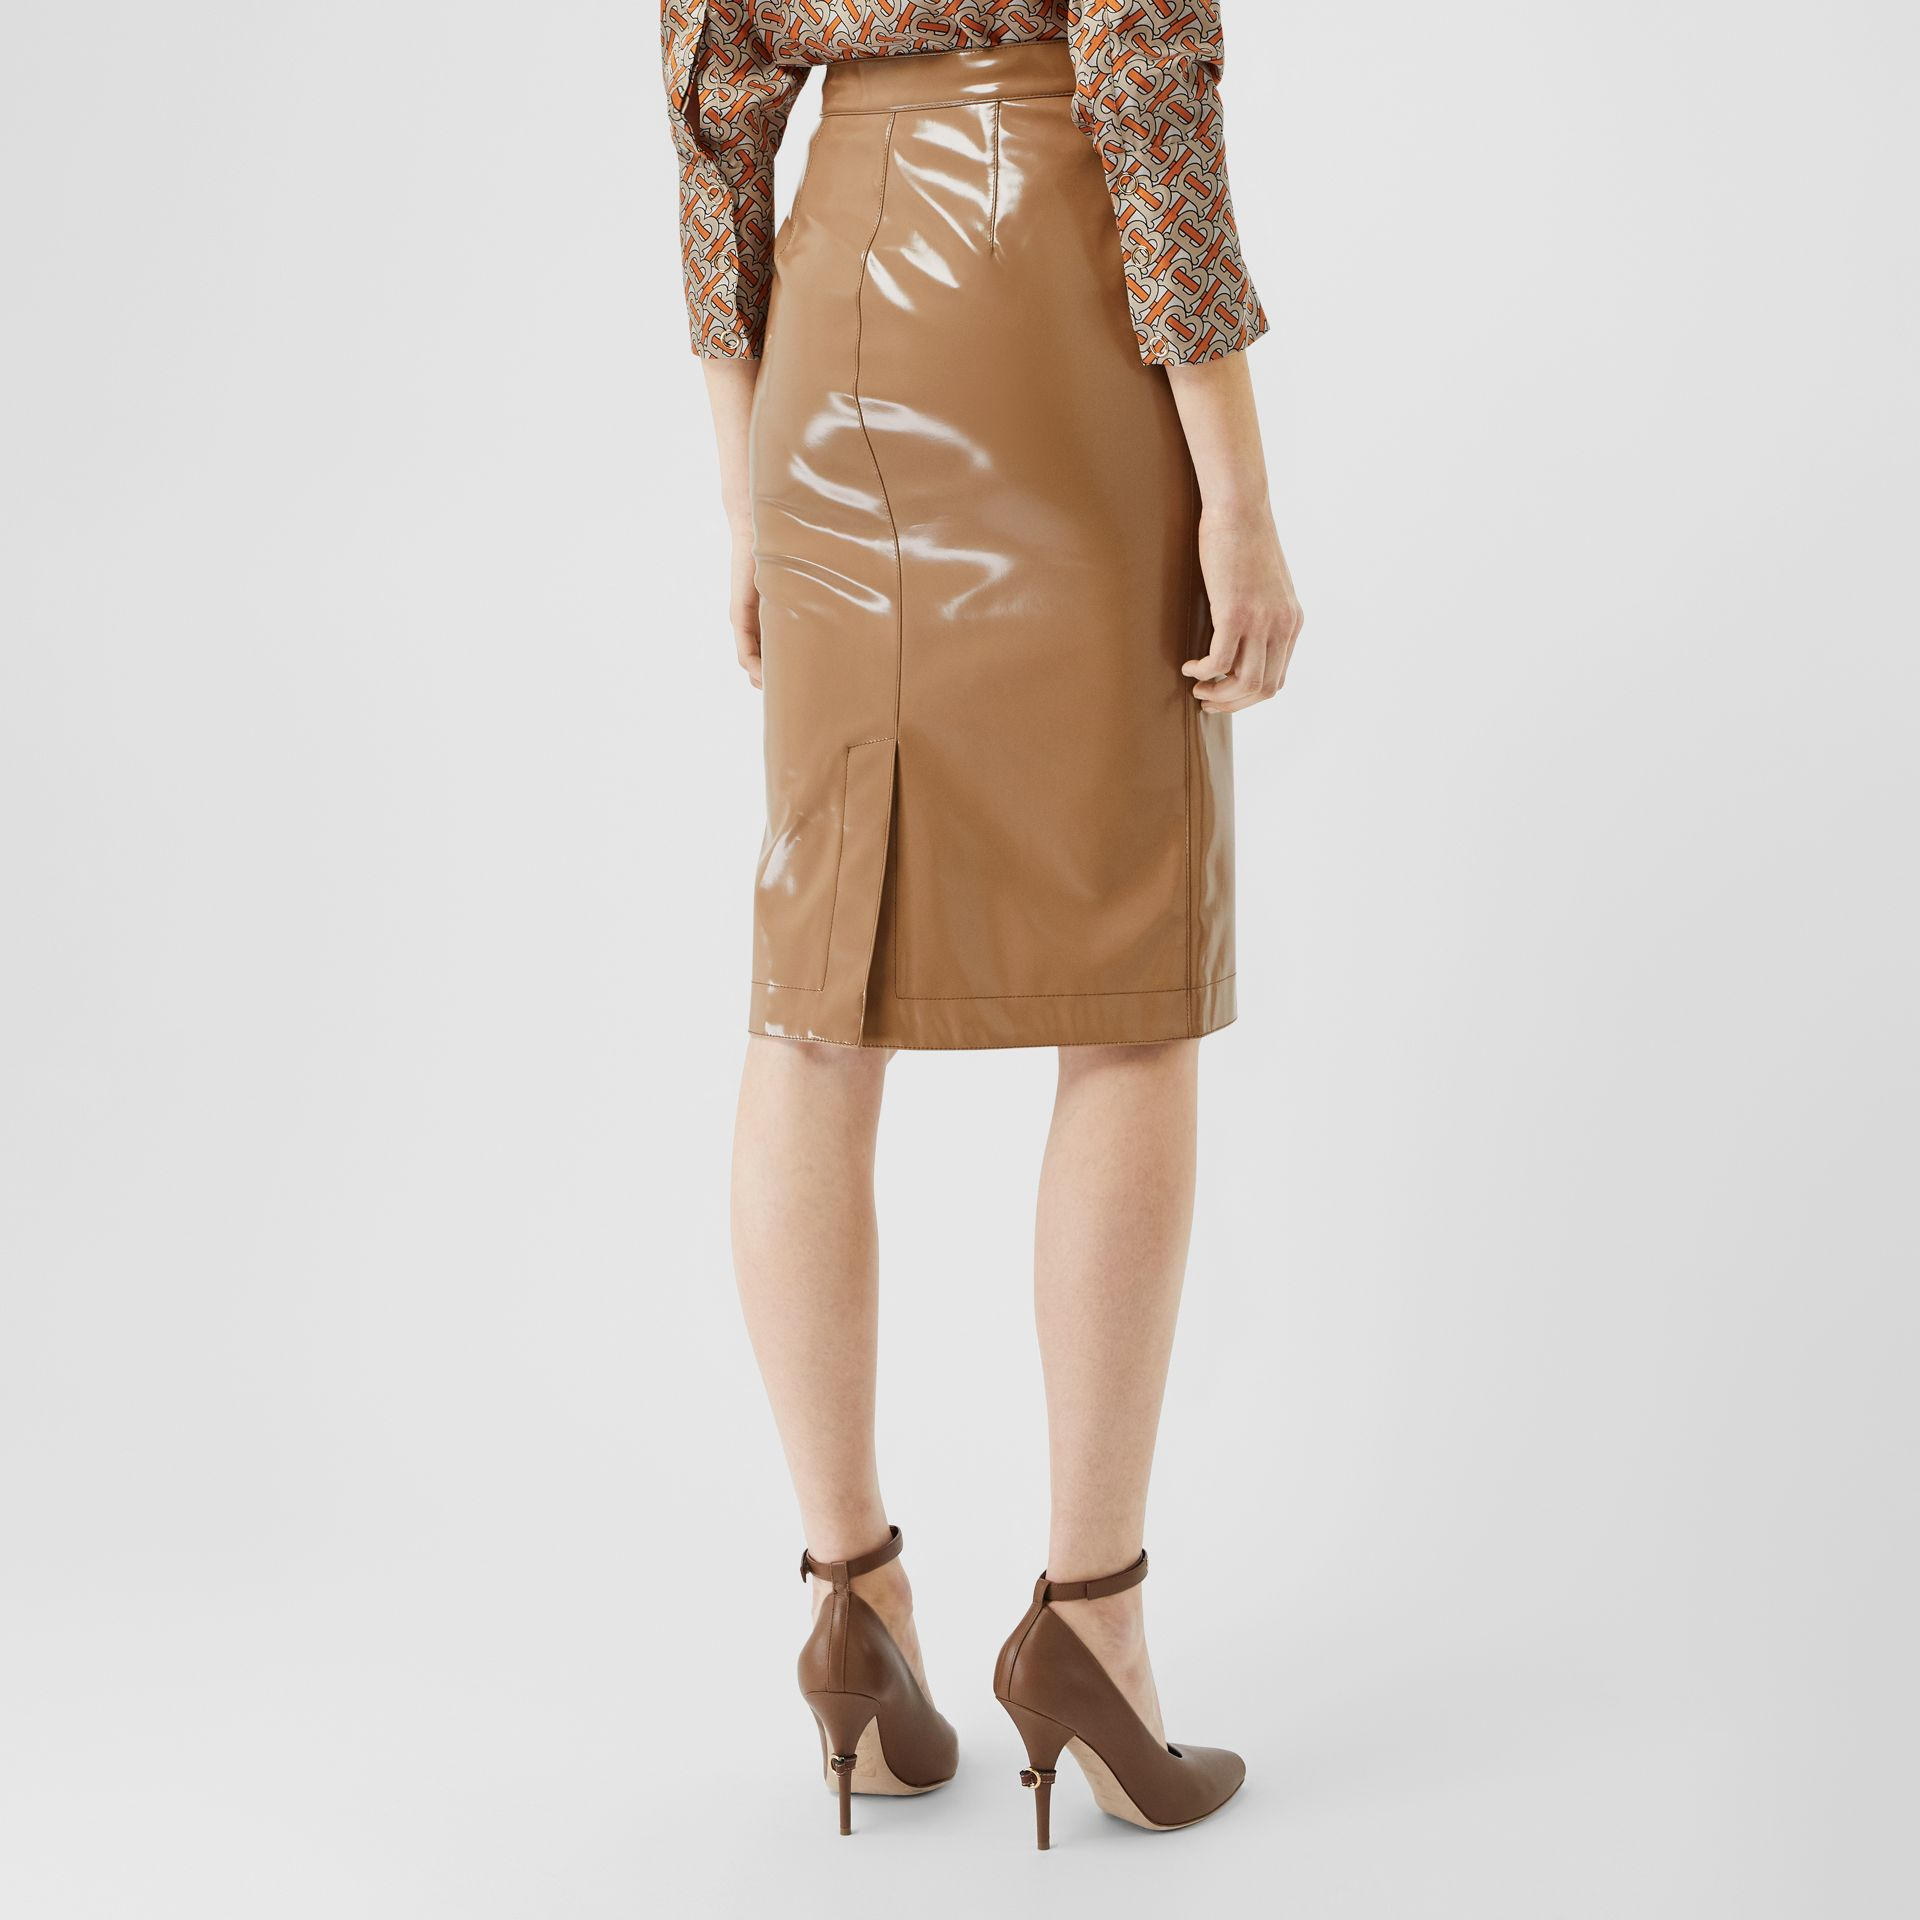 Vinyl Pencil Skirt in Utility Beige - Women | Burberry - gallery image 2